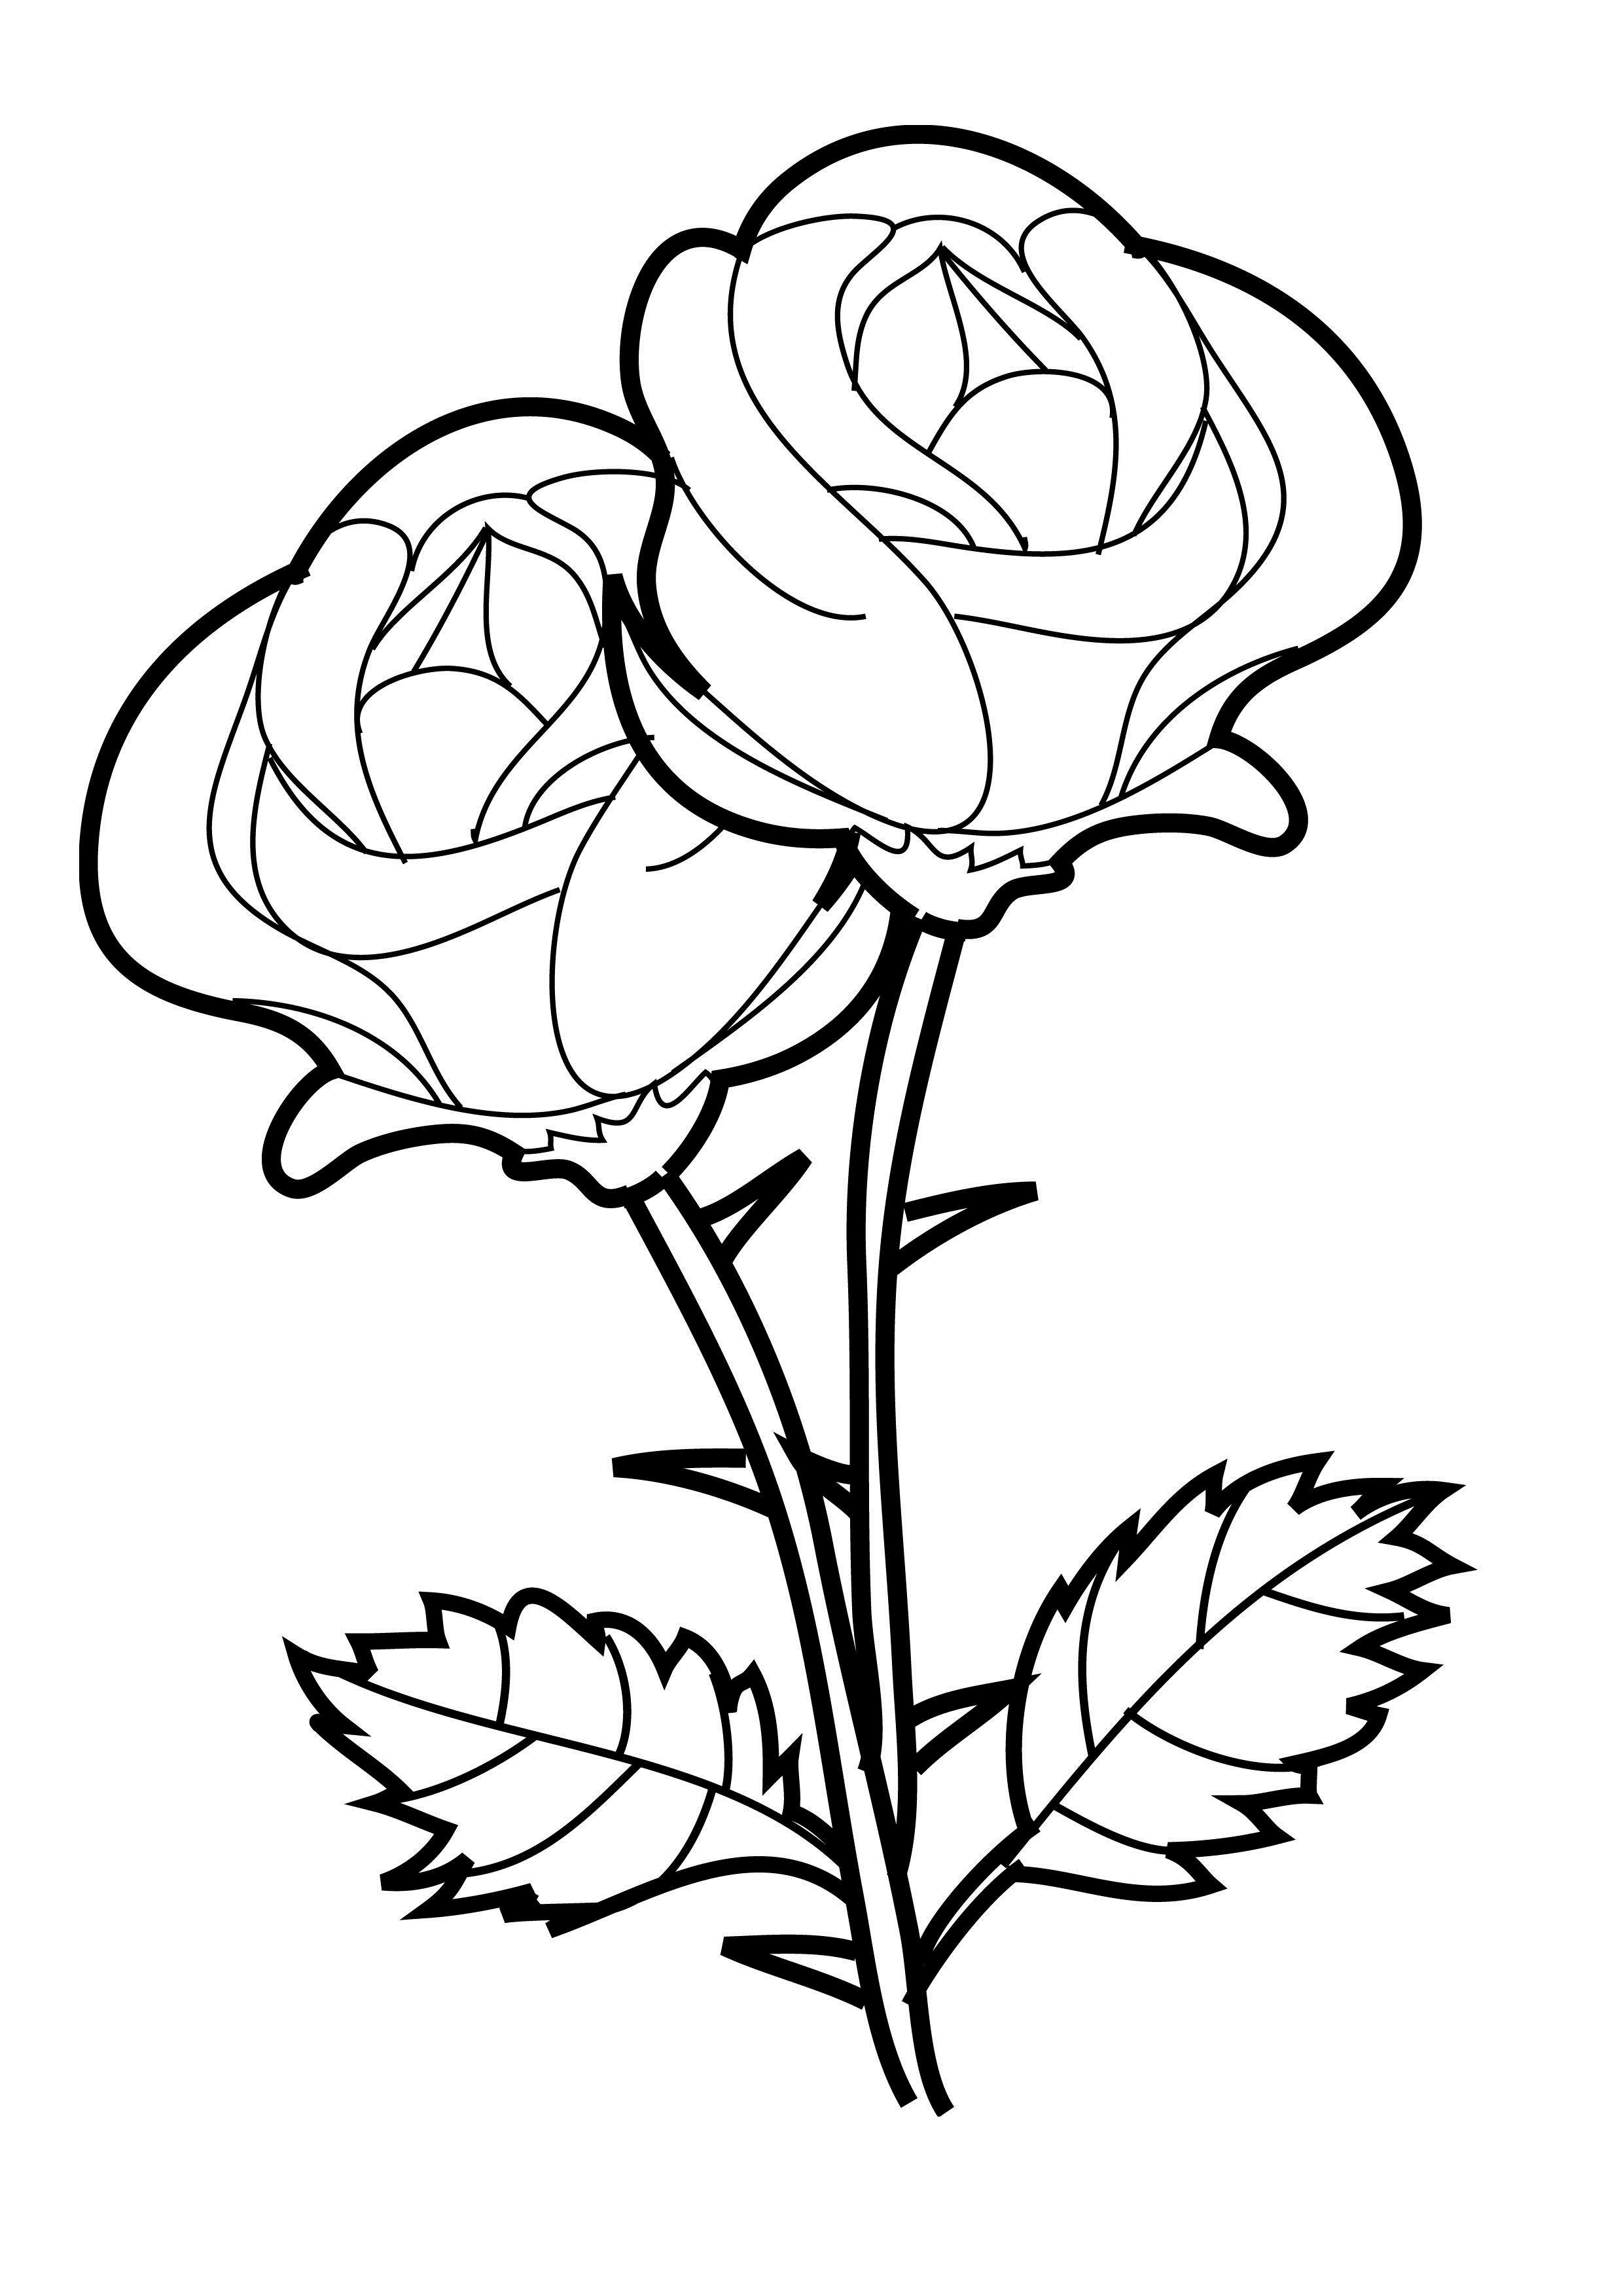 simple rose coloring pages simple flower bouquet drawing flowers healthy flower pages simple rose coloring